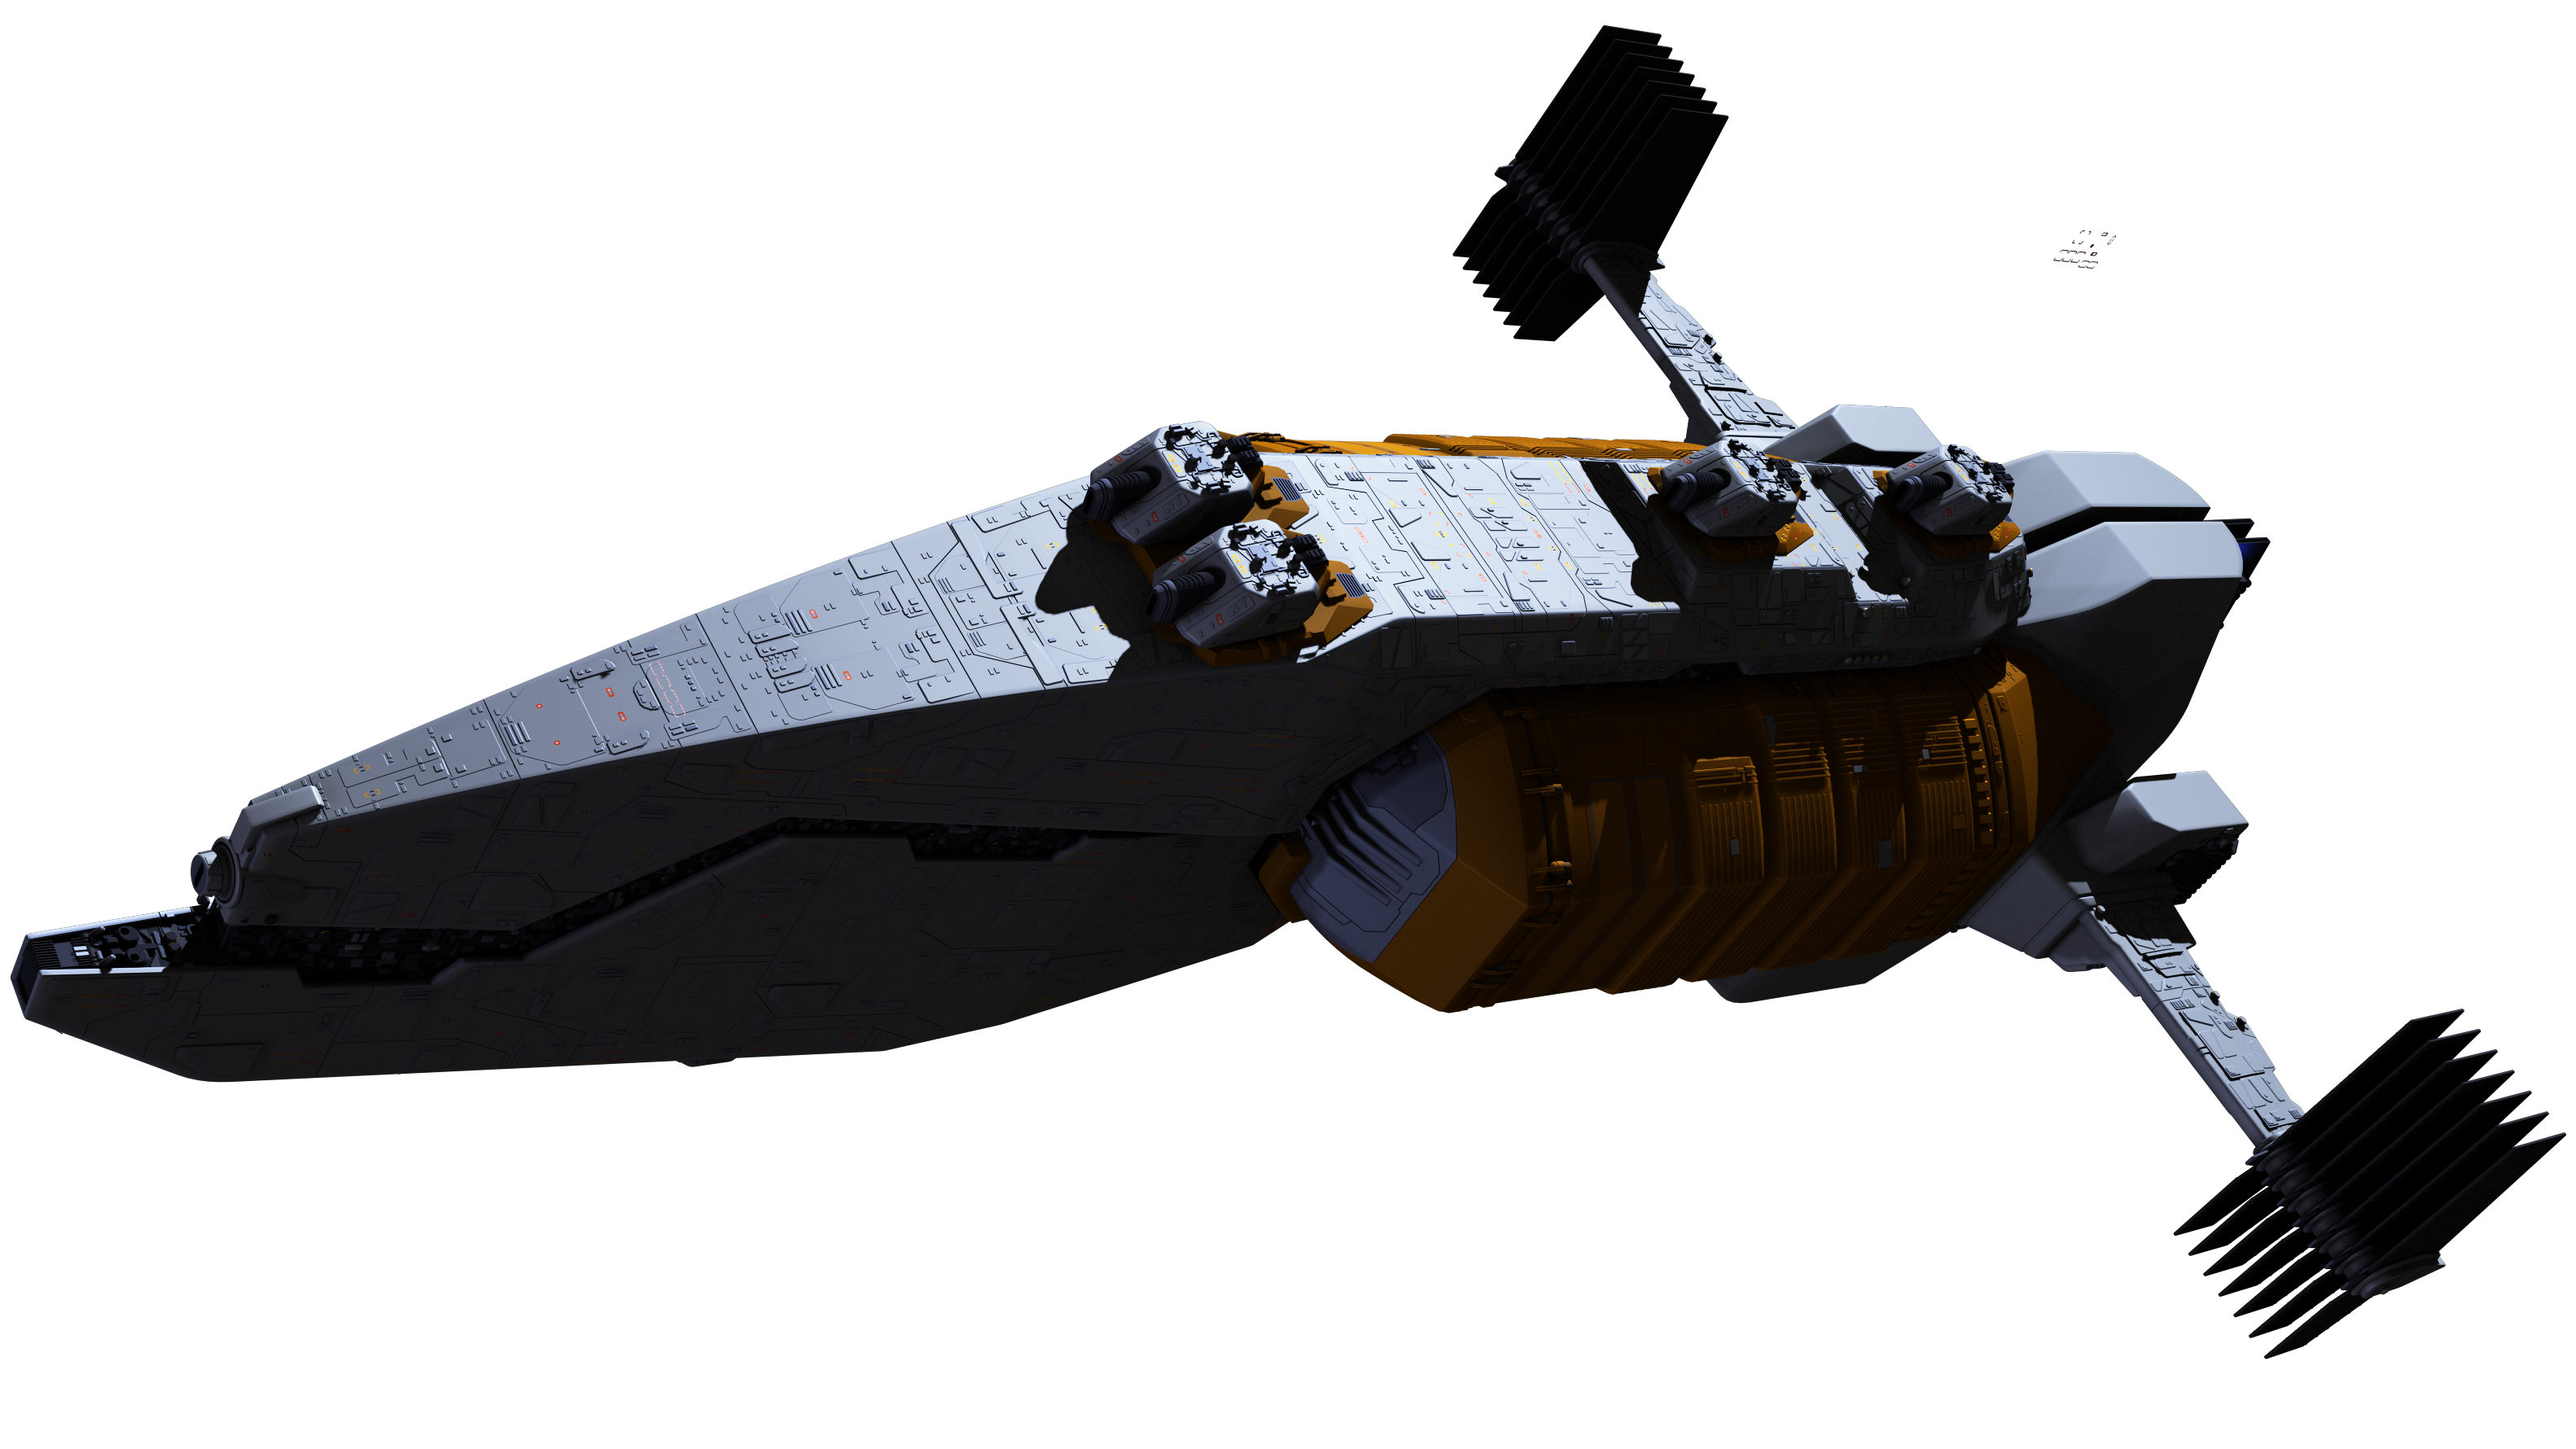 Spaceship clipart crashed spaceship. Download and use spacecraft